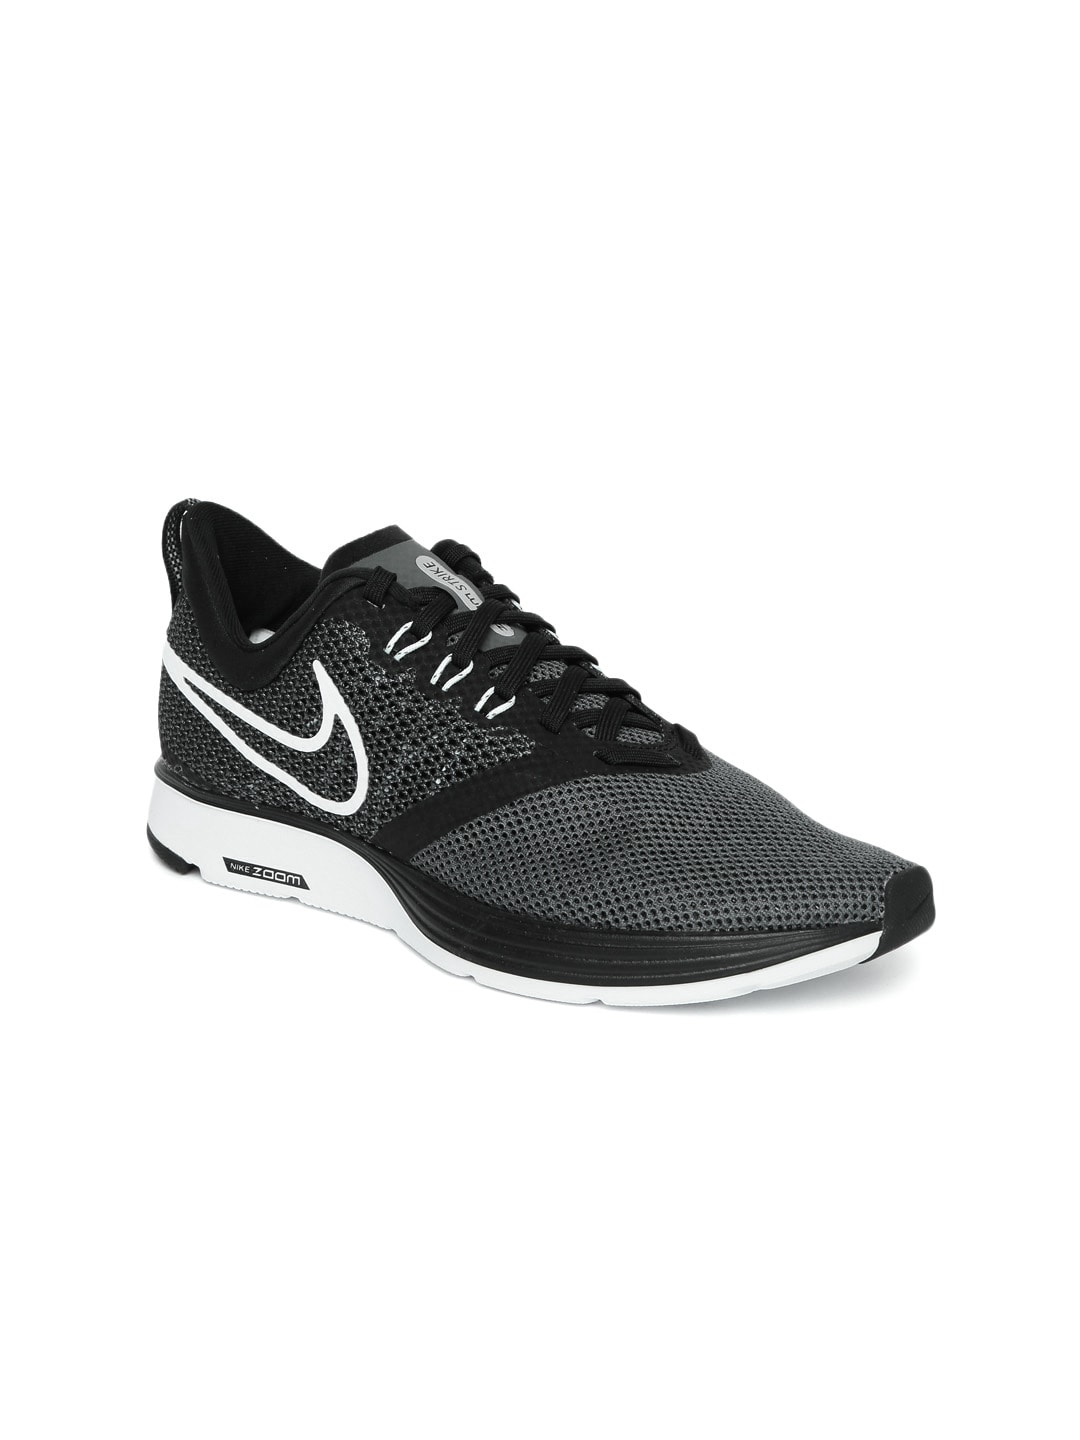 ddbbeaedf1d2ef Nike Shoes - Buy Nike Shoes for Men